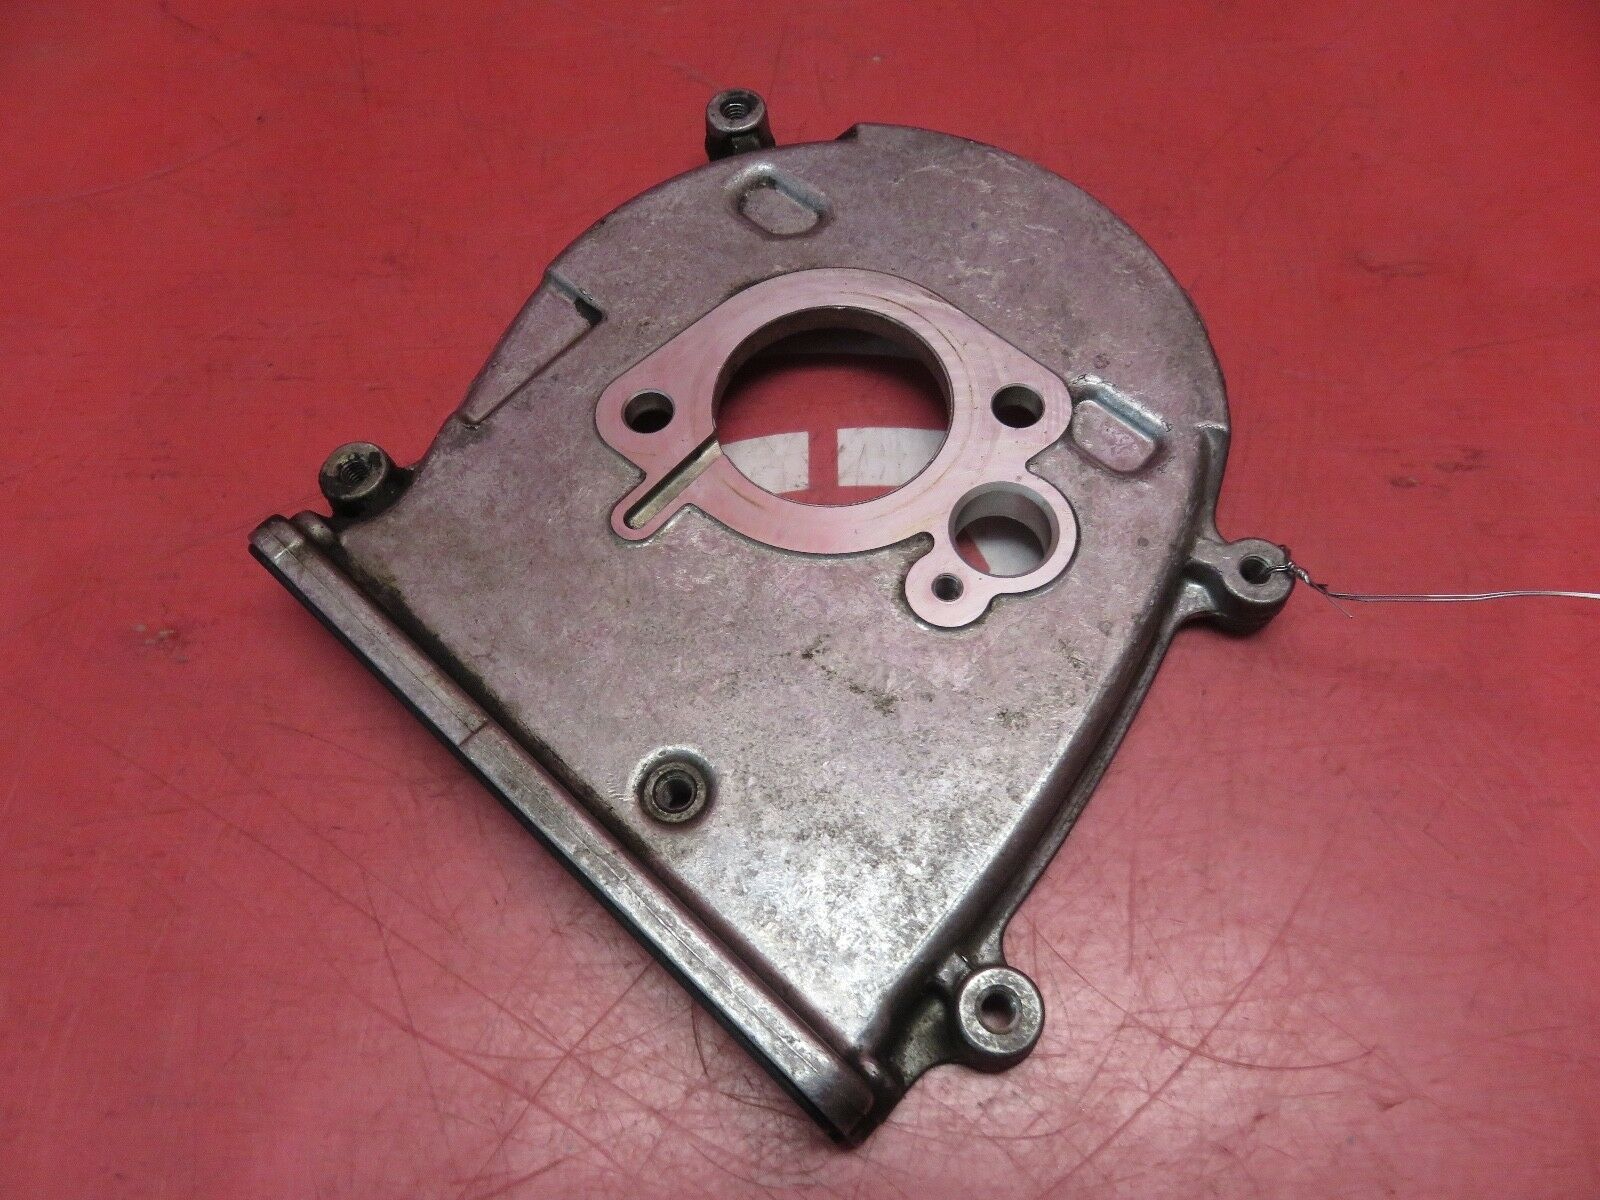 Used Acura Rl Timing Components For Sale 2005 Belt On 2008 Kb1 Oem Front Cylinder Head Back Cover Plate